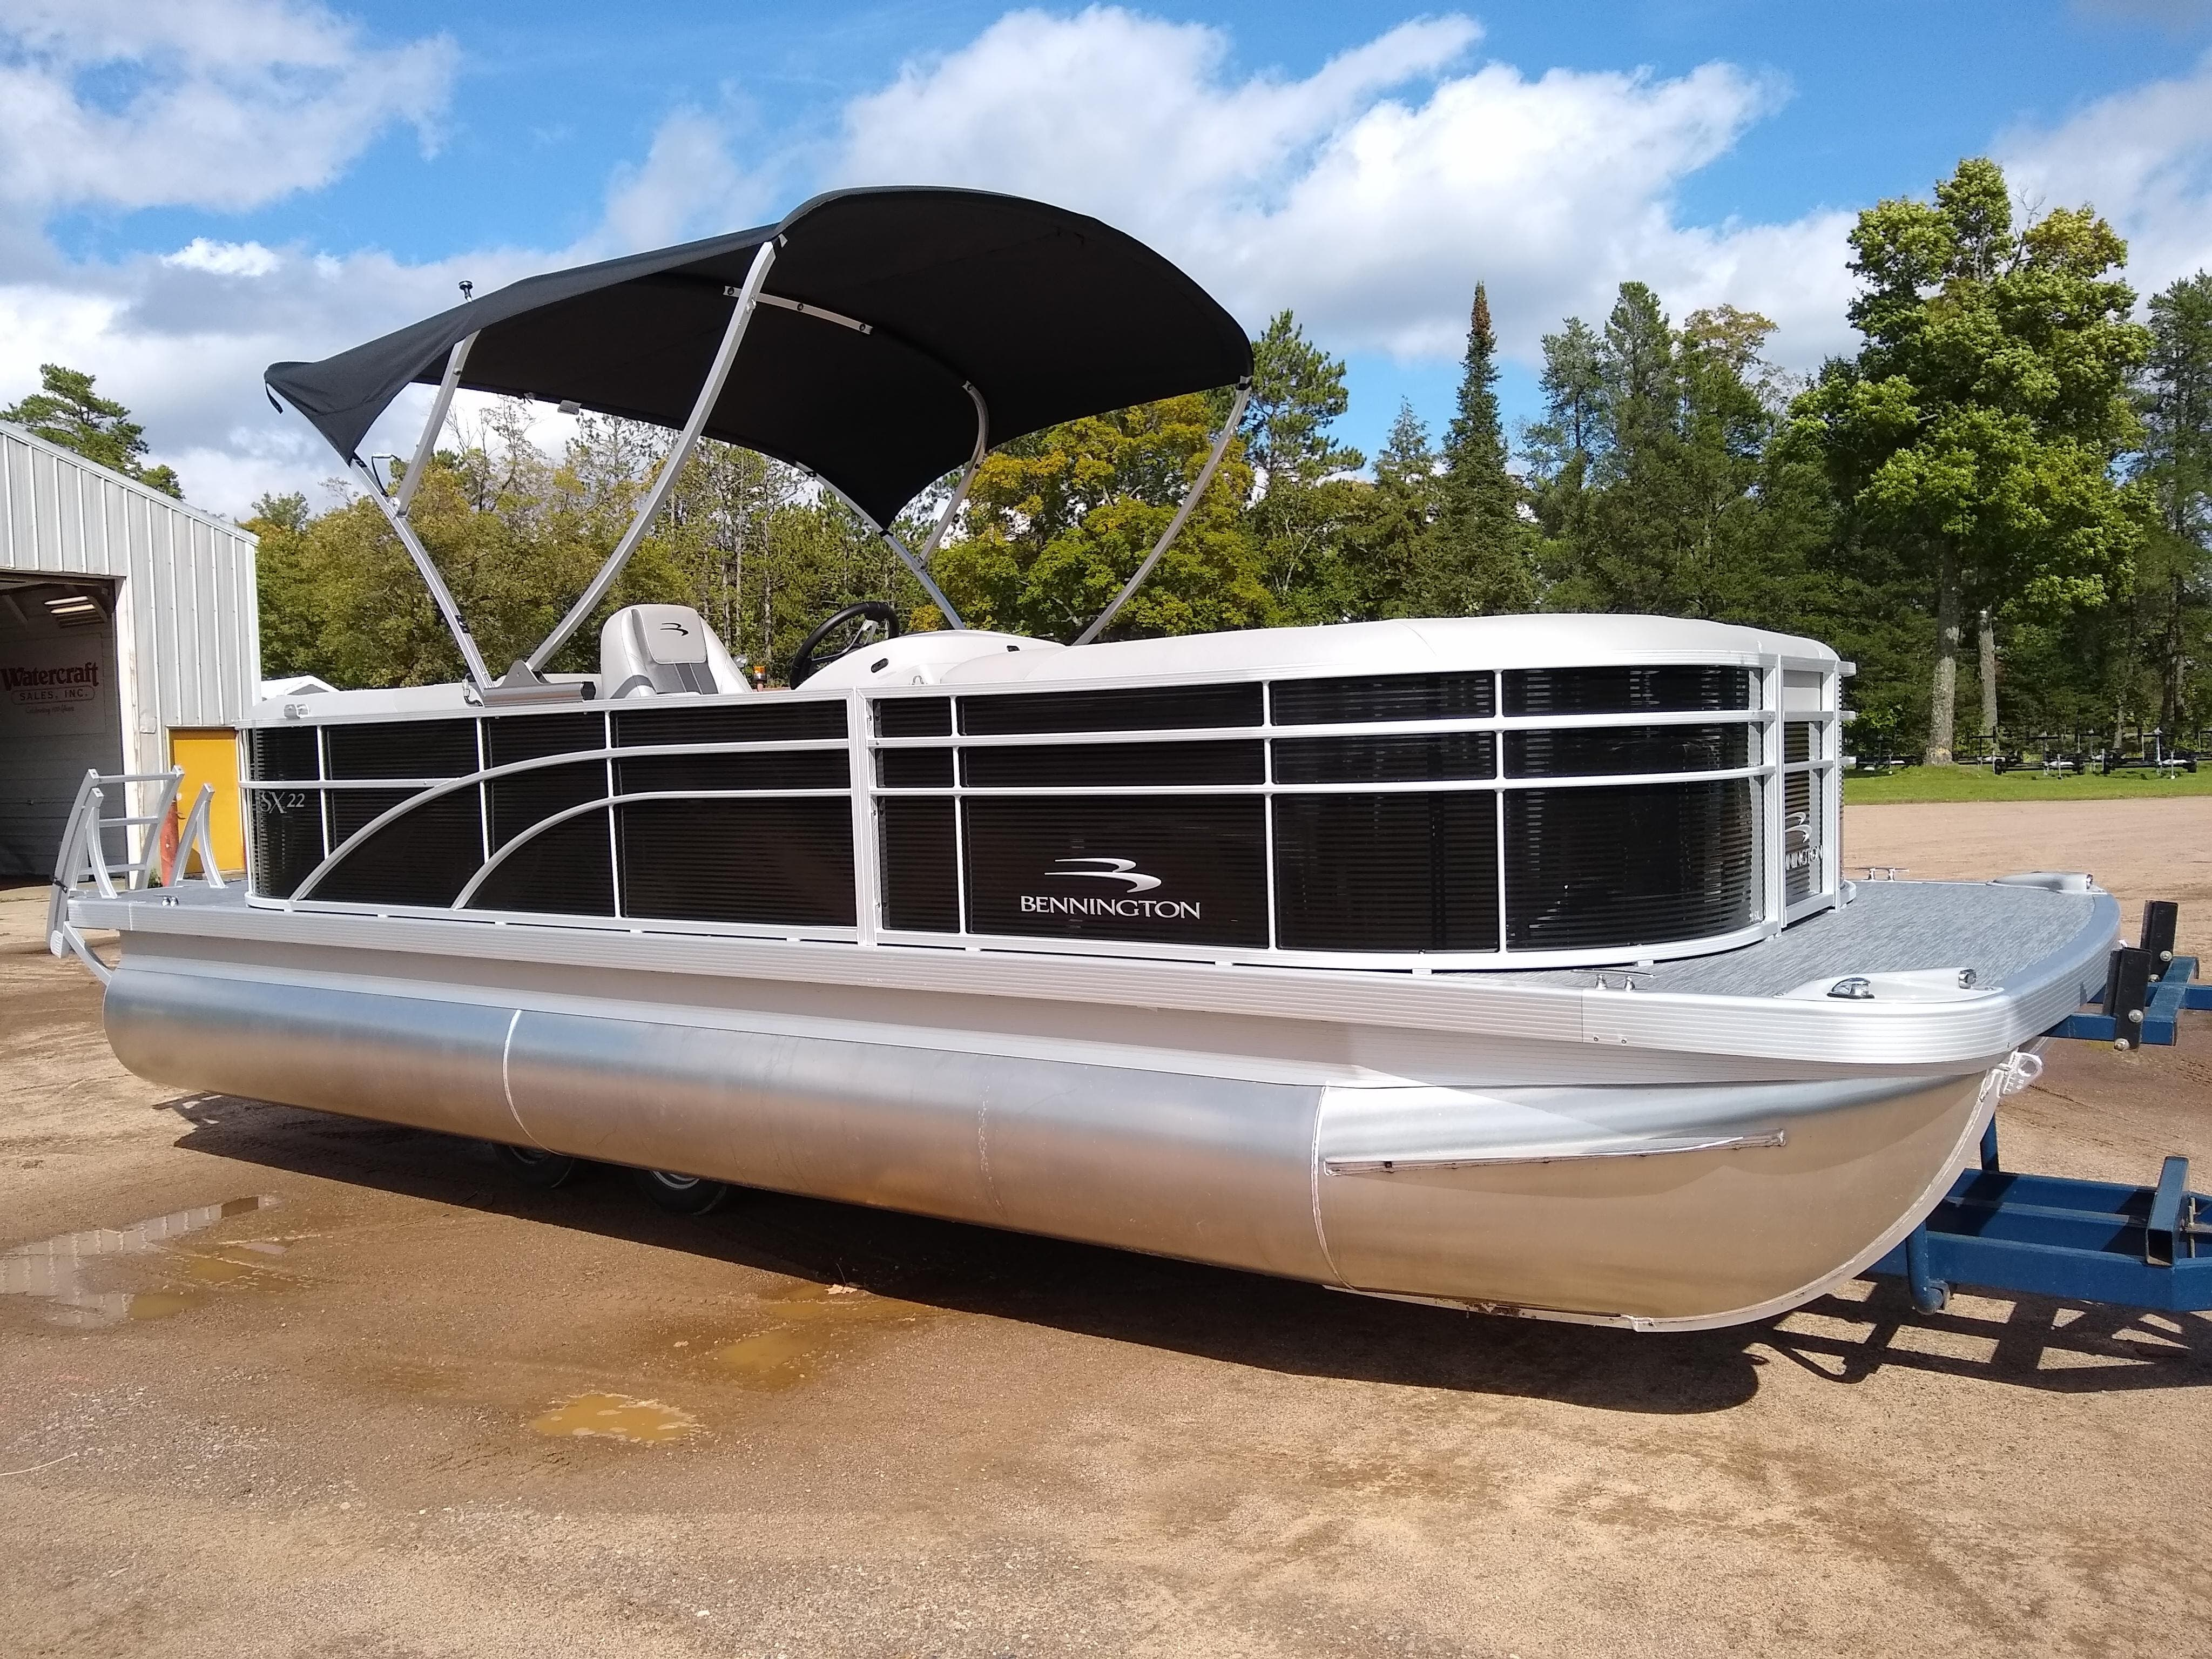 2020 Bennington boat for sale, model of the boat is SX Series 22 & Image # 2 of 14